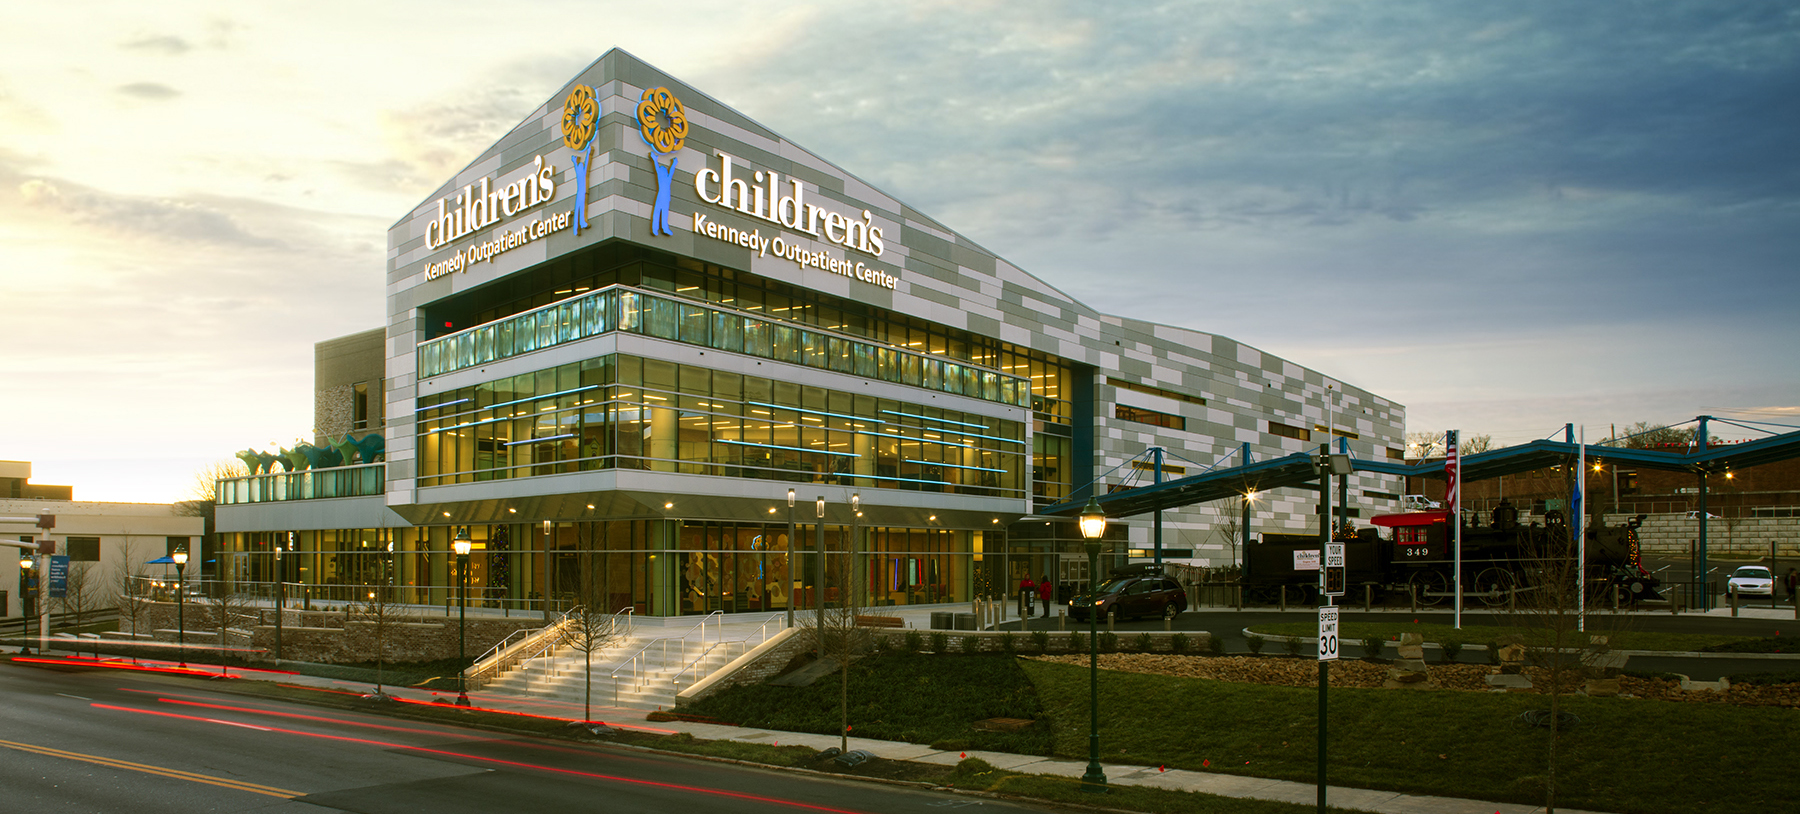 It Takes a Community to Build a Children's Hospital Outpatient Center2